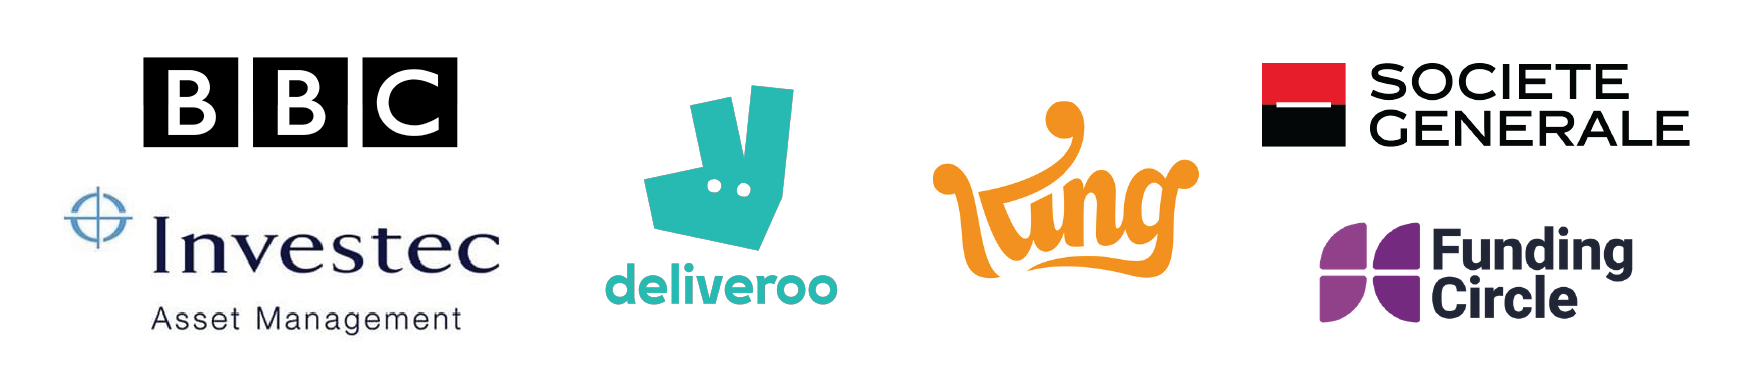 Logos_For_About-02.png